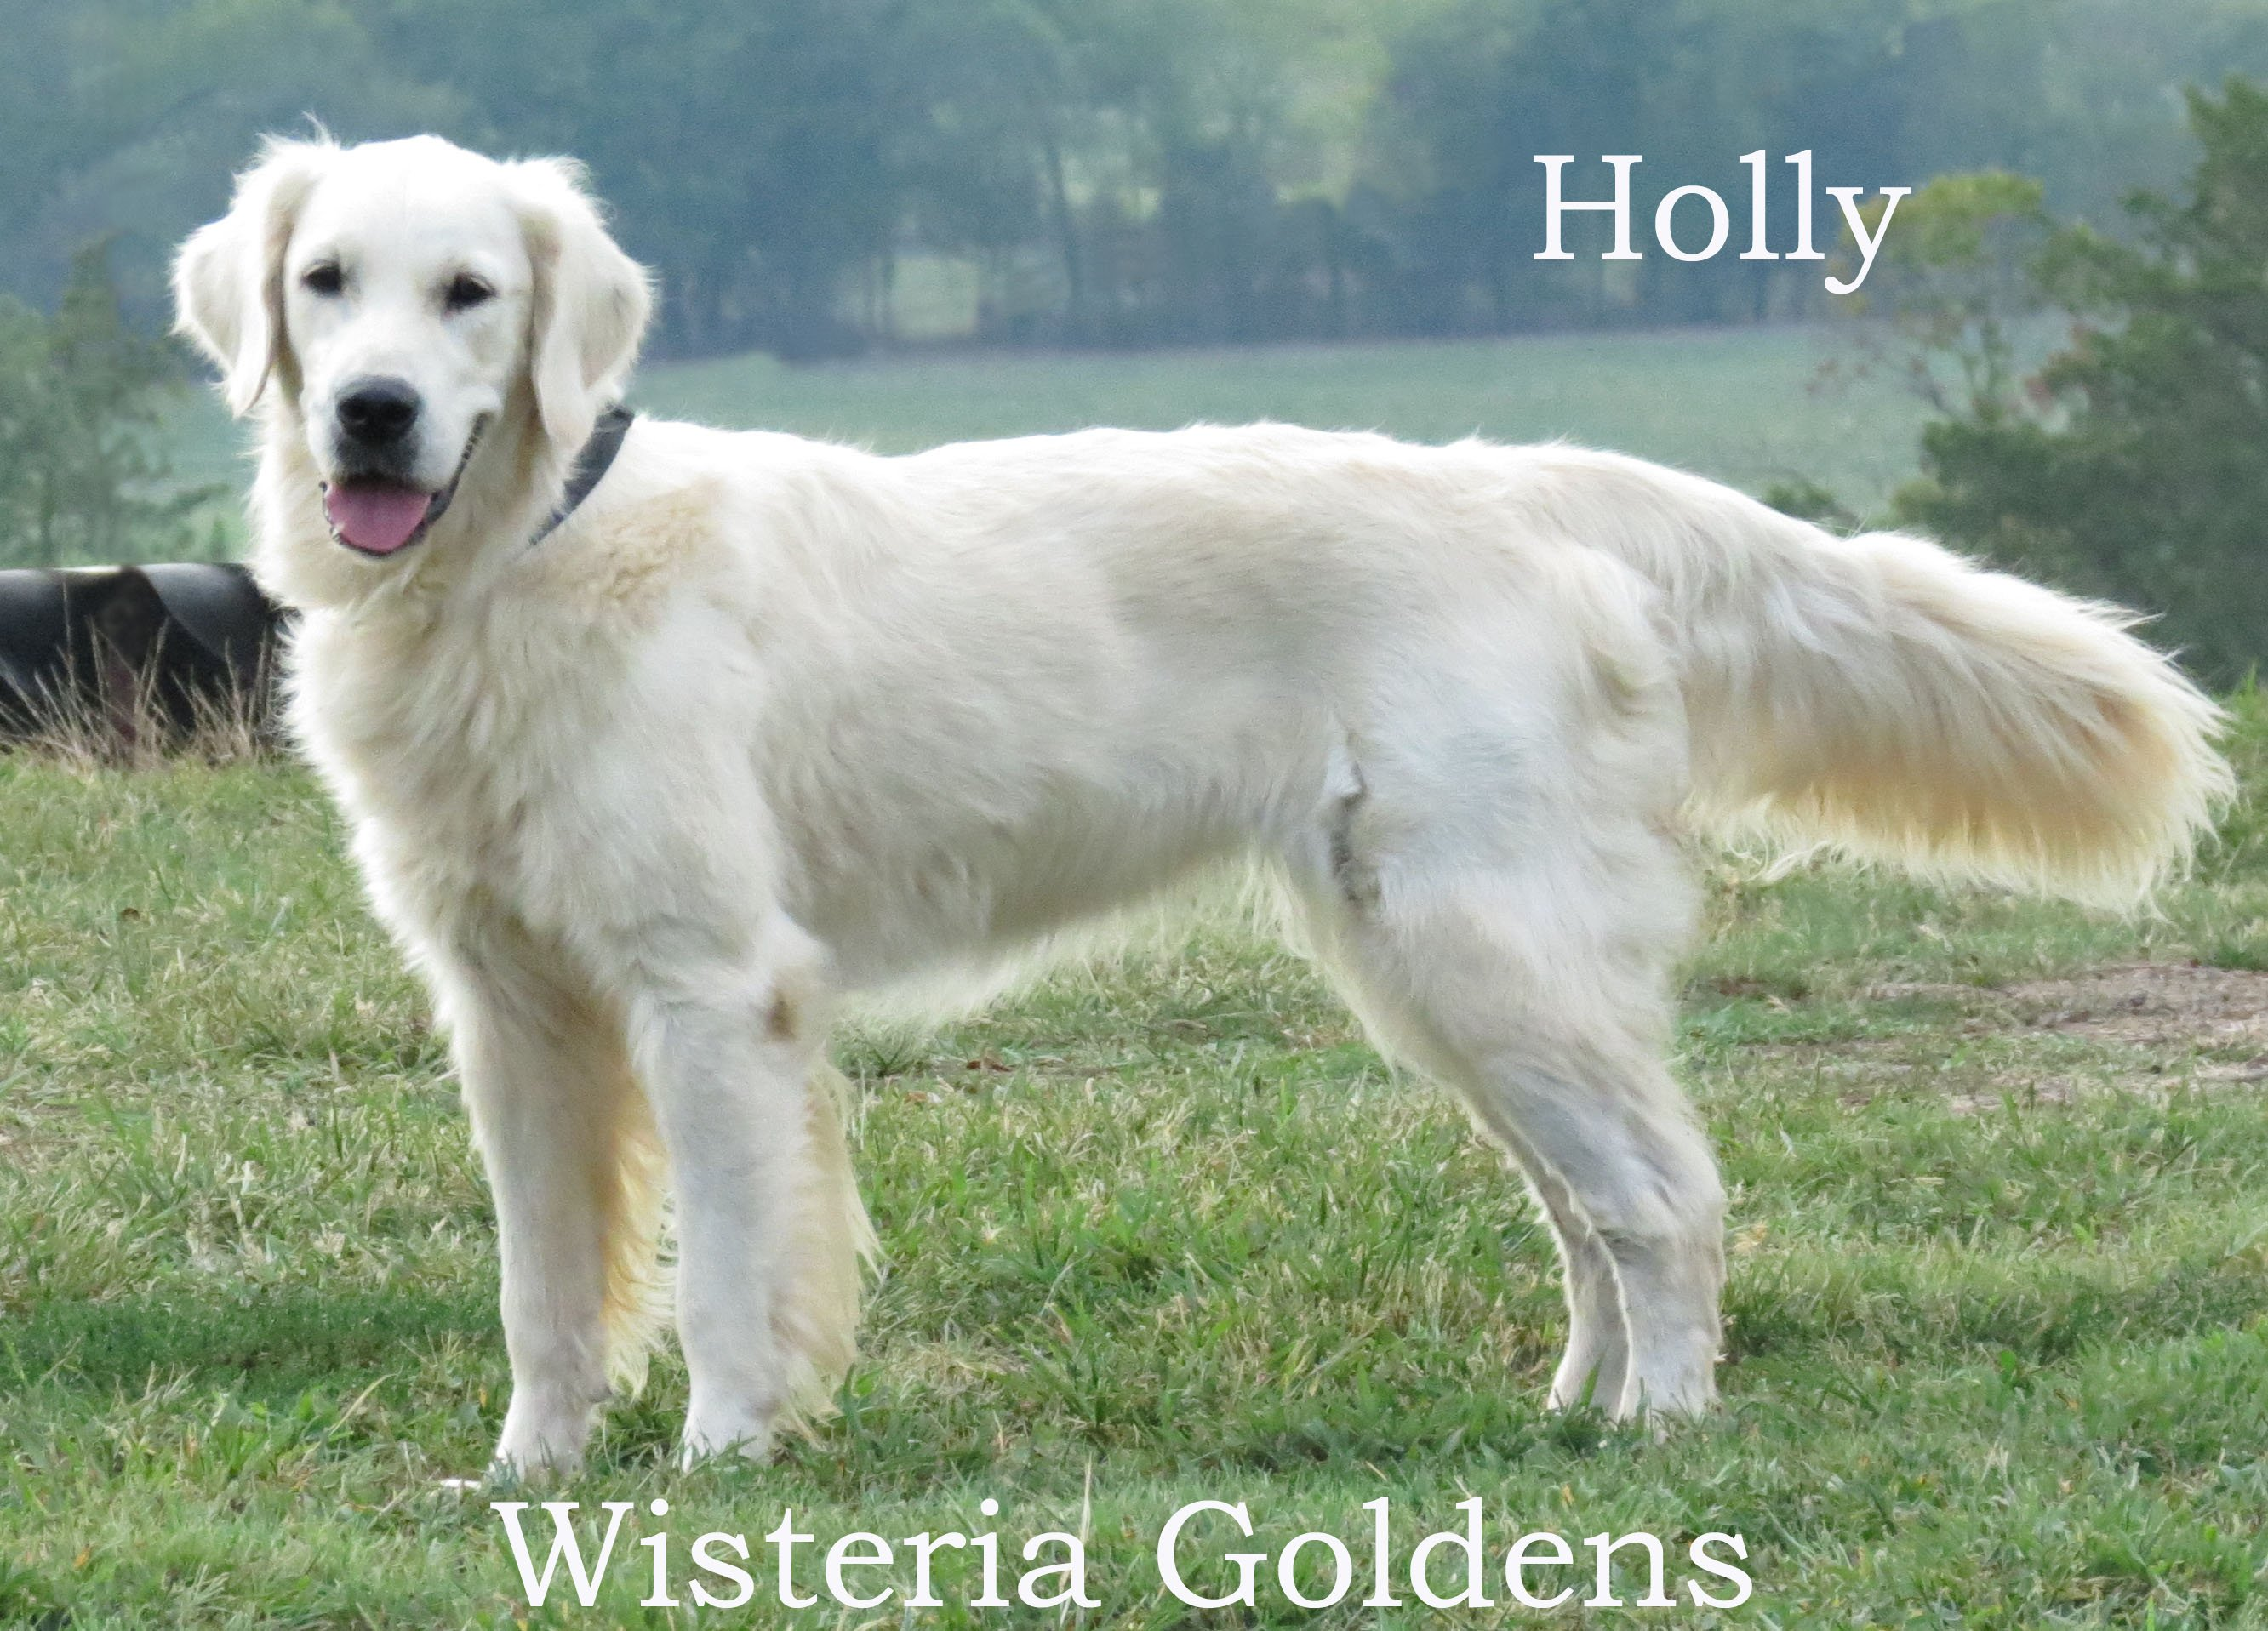 holly-full-english-creme-golden-retriever-wisteria-goldens_0005_1